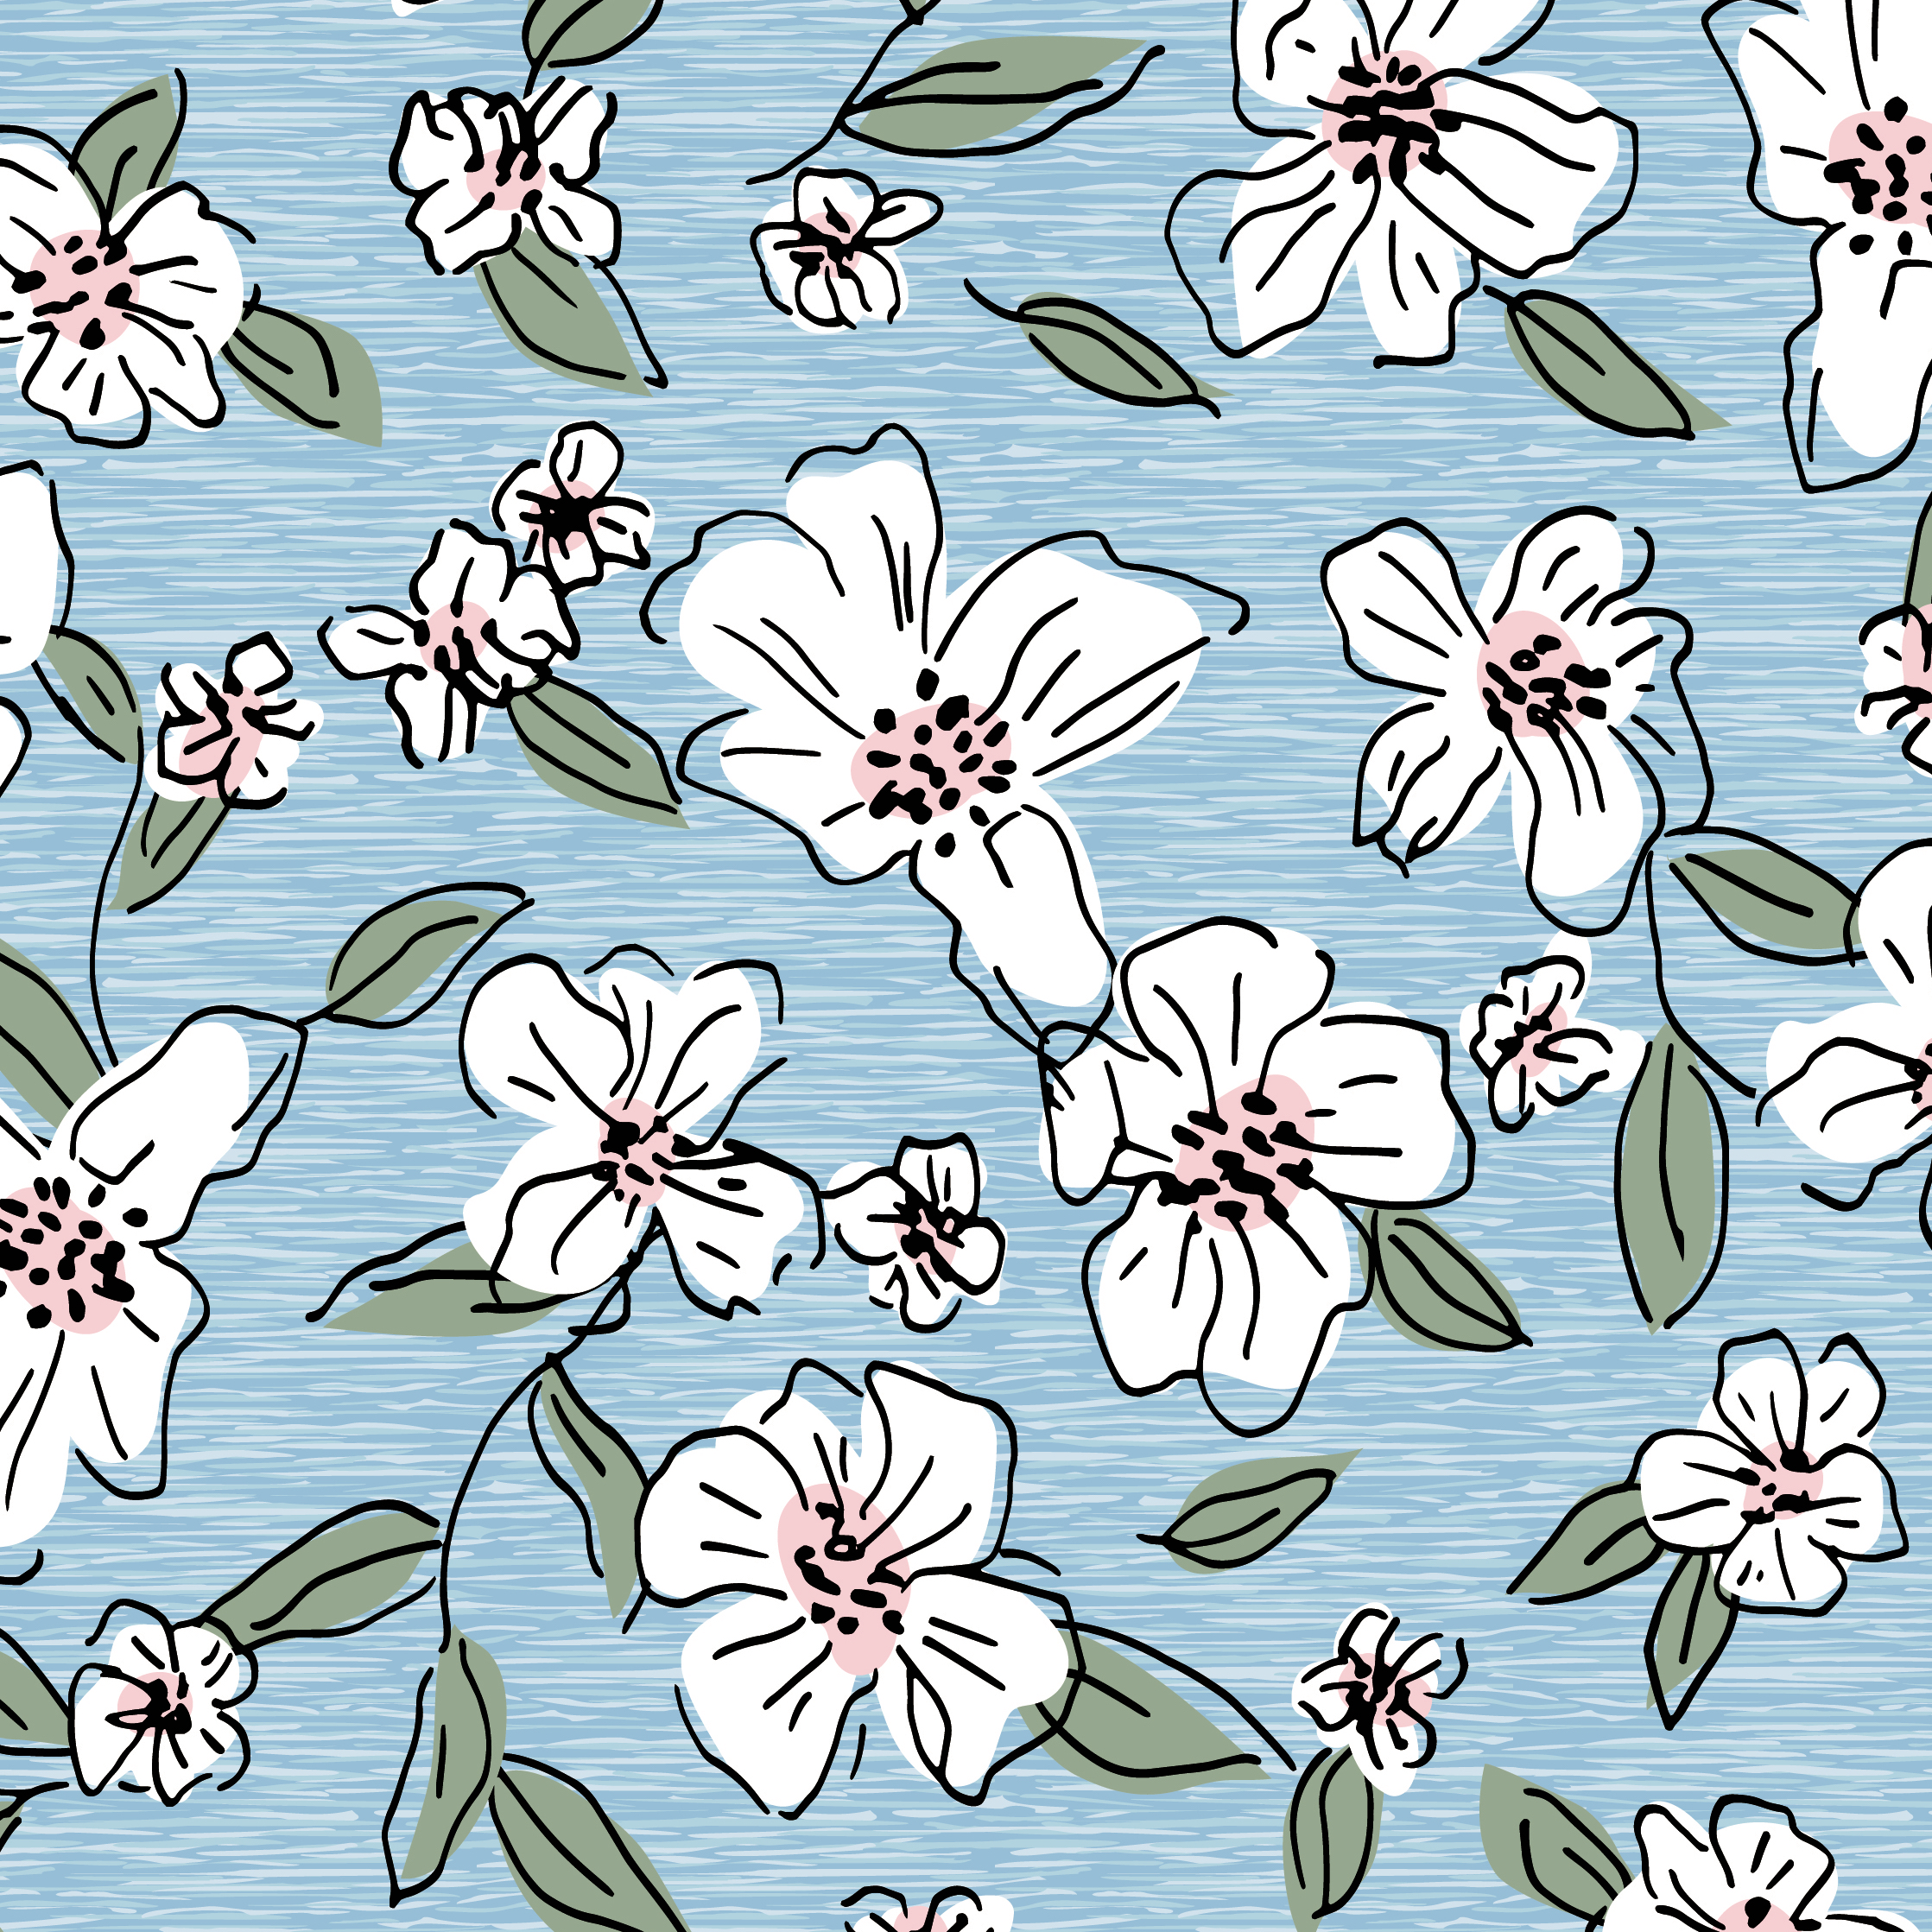 Linnell Floral-S286-01.jpg